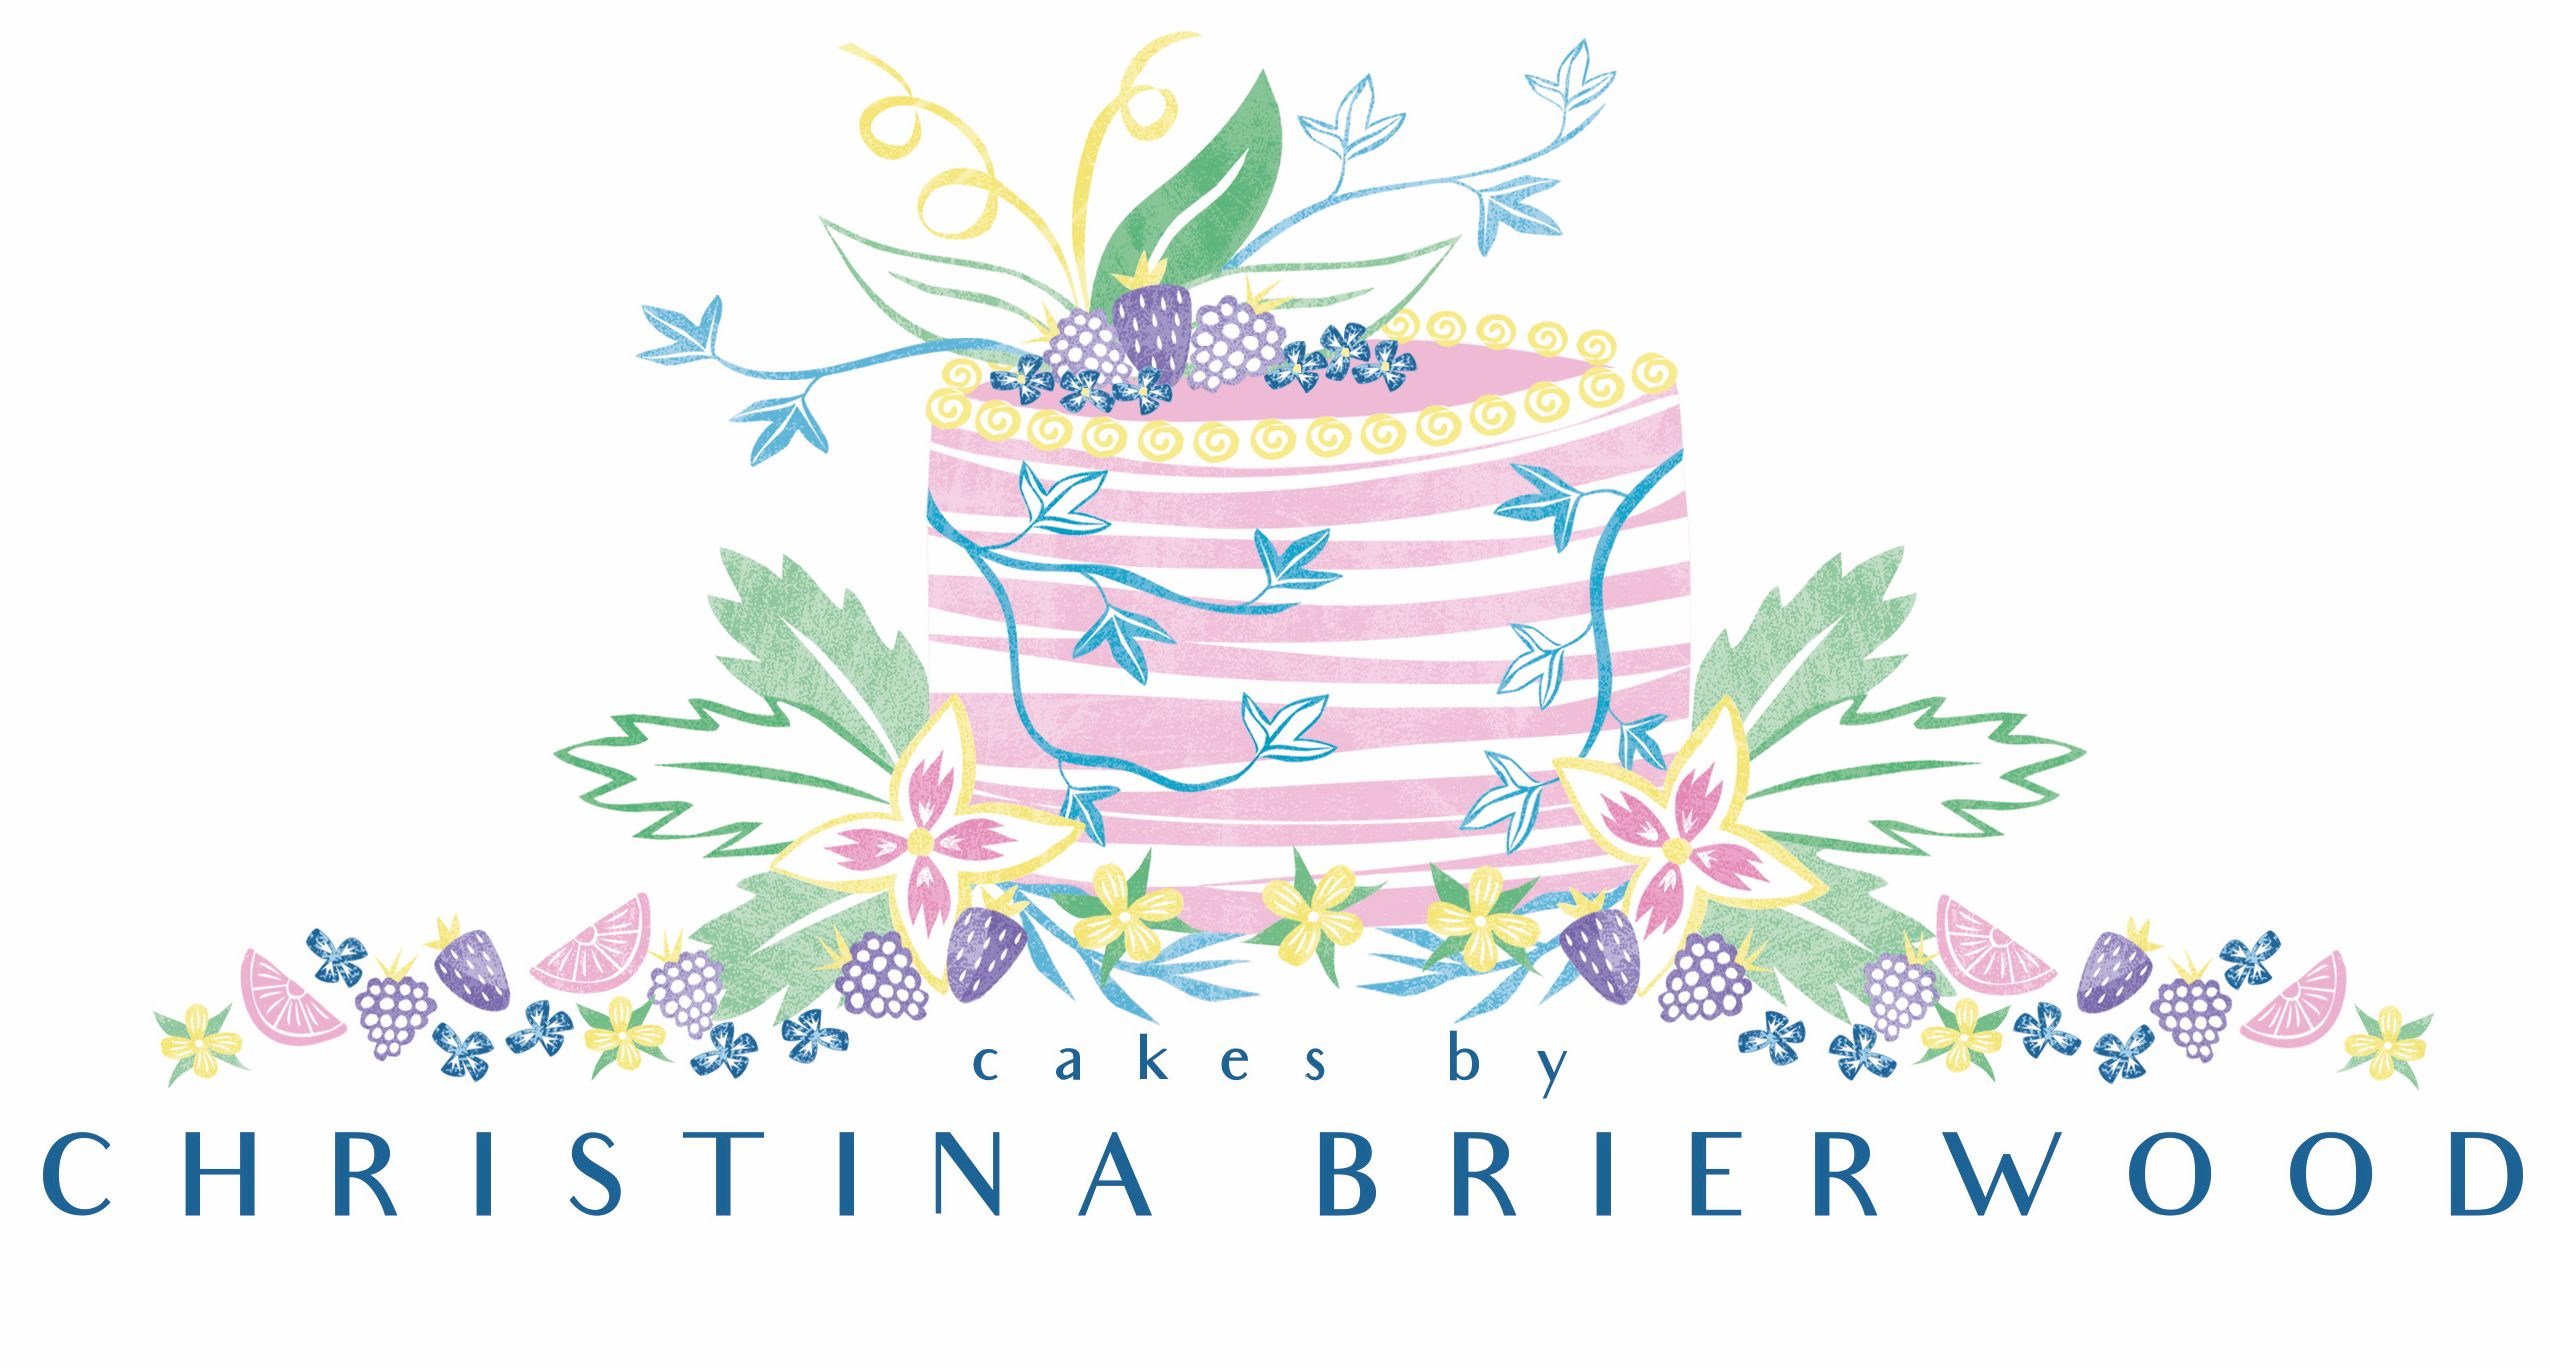 Cakes by Christina Brierwood